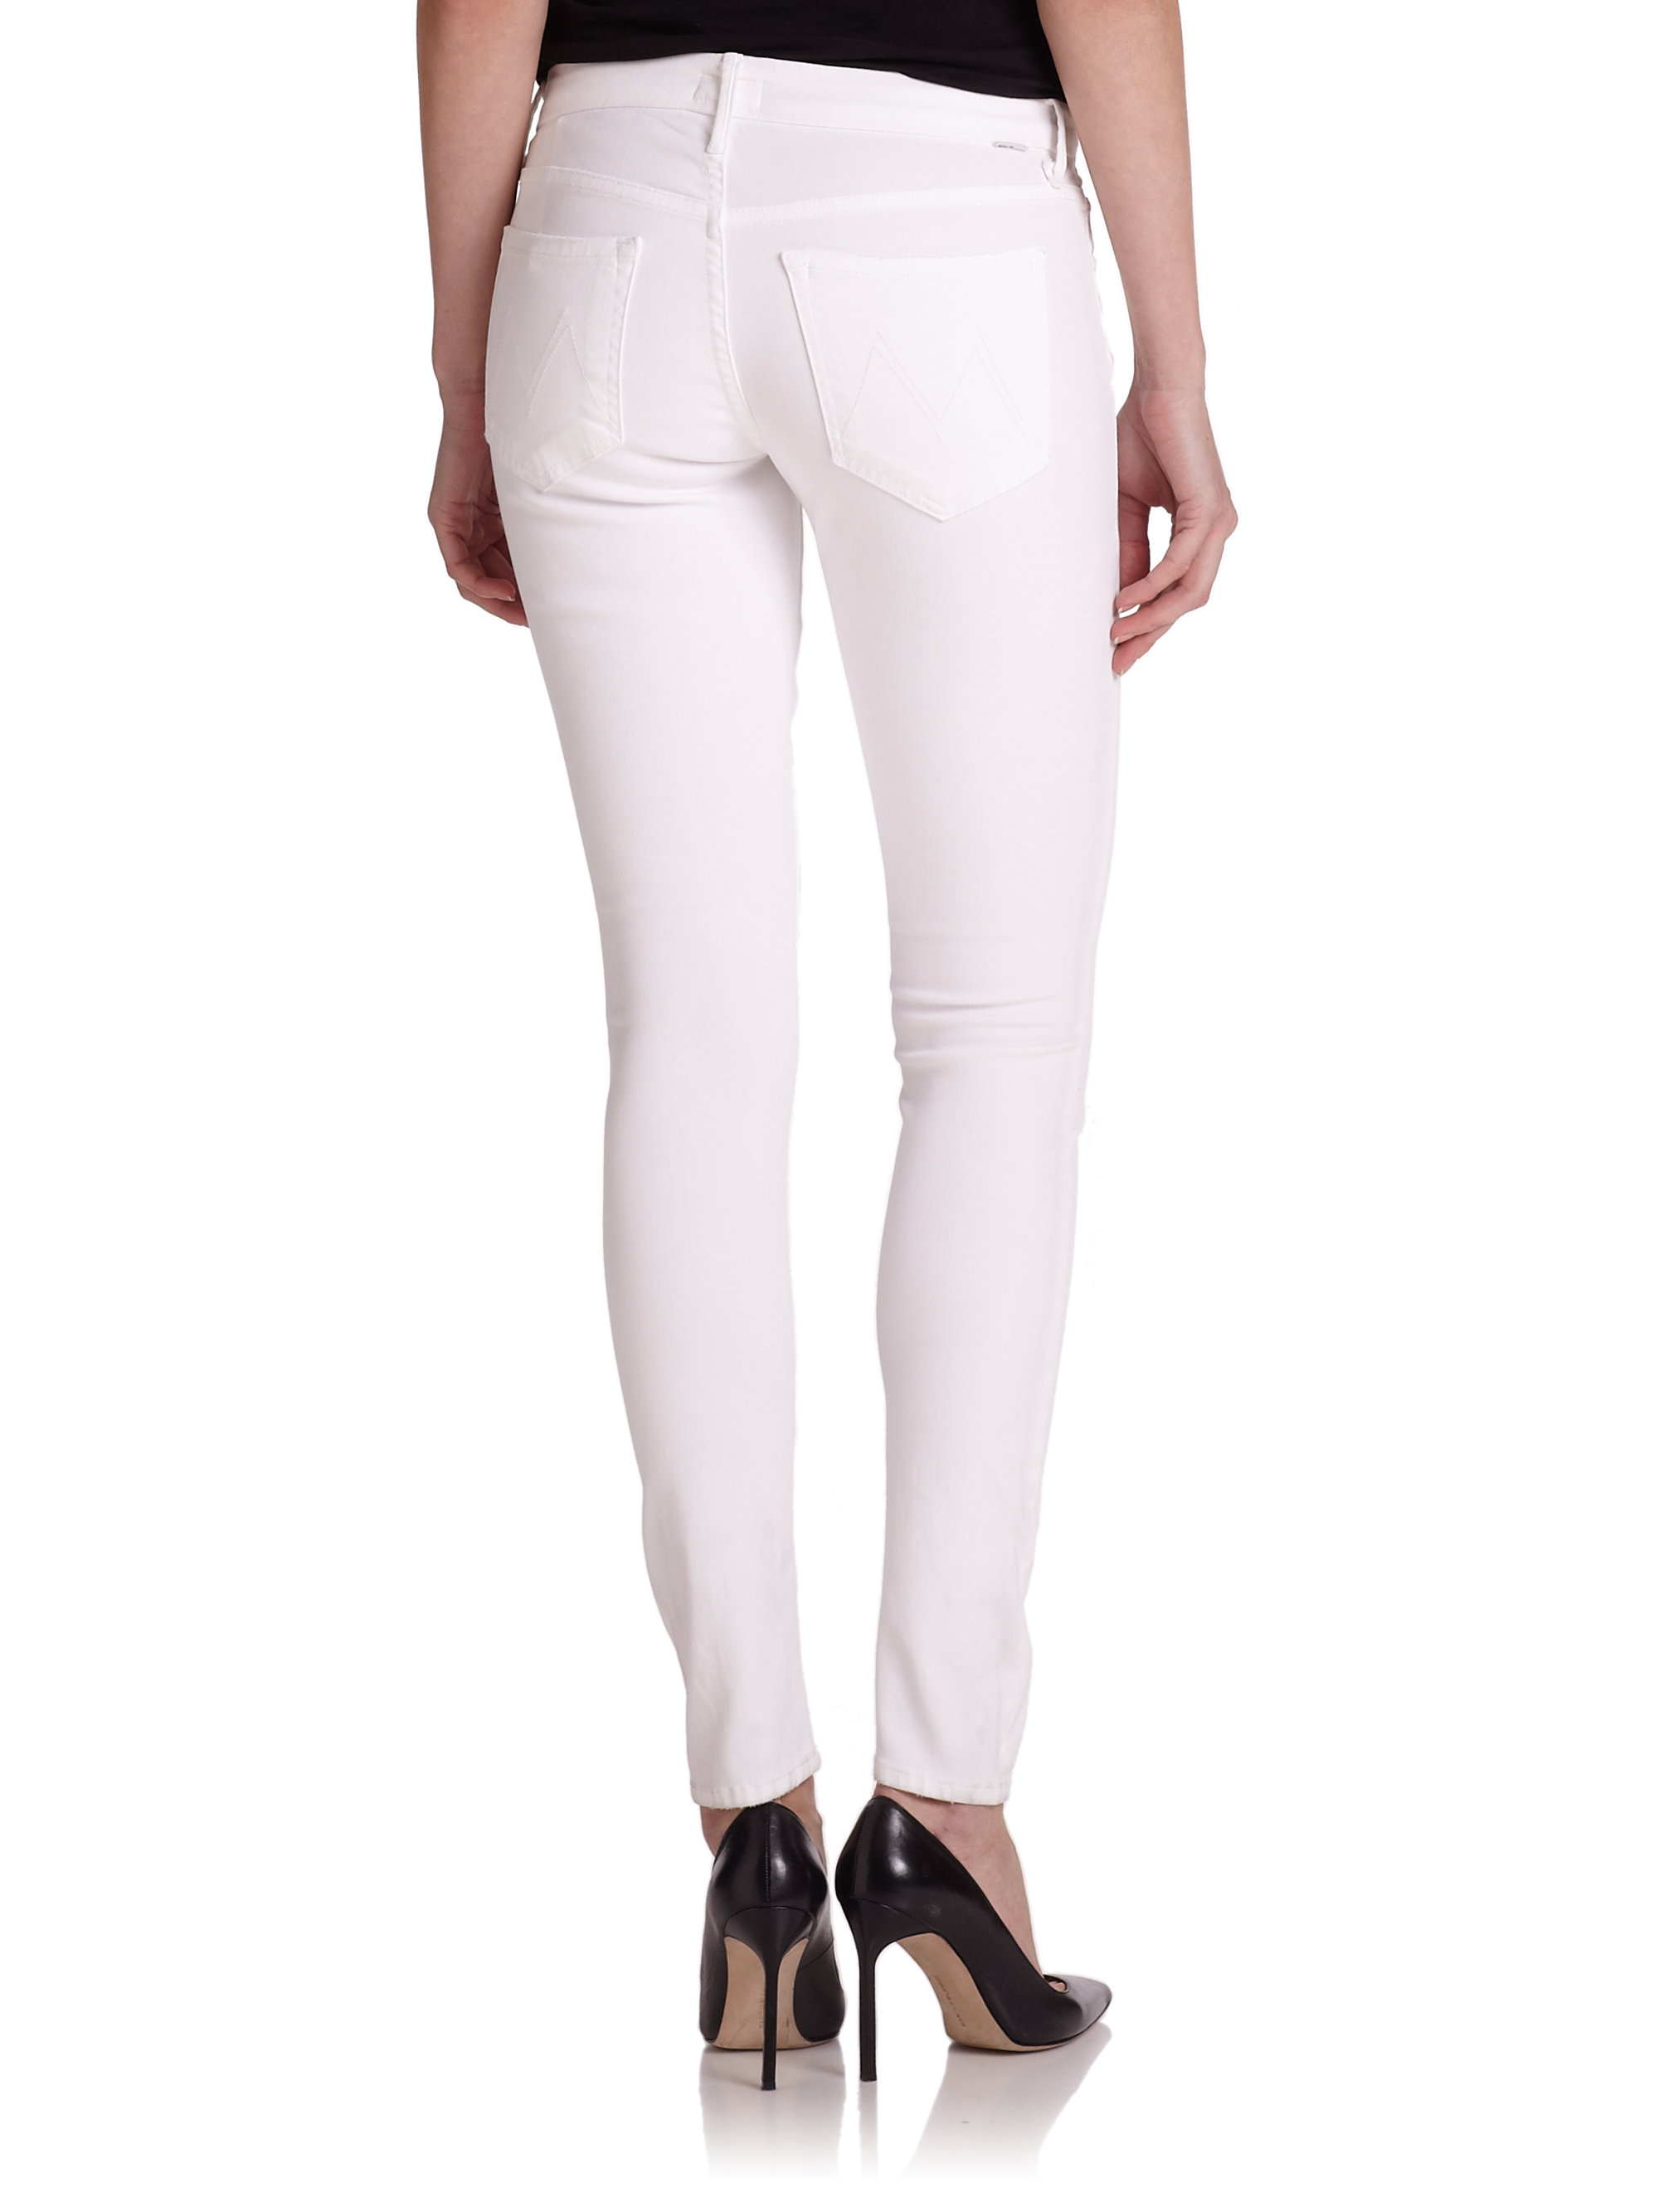 Mother The Looker Skinny Jeans in White | Lyst